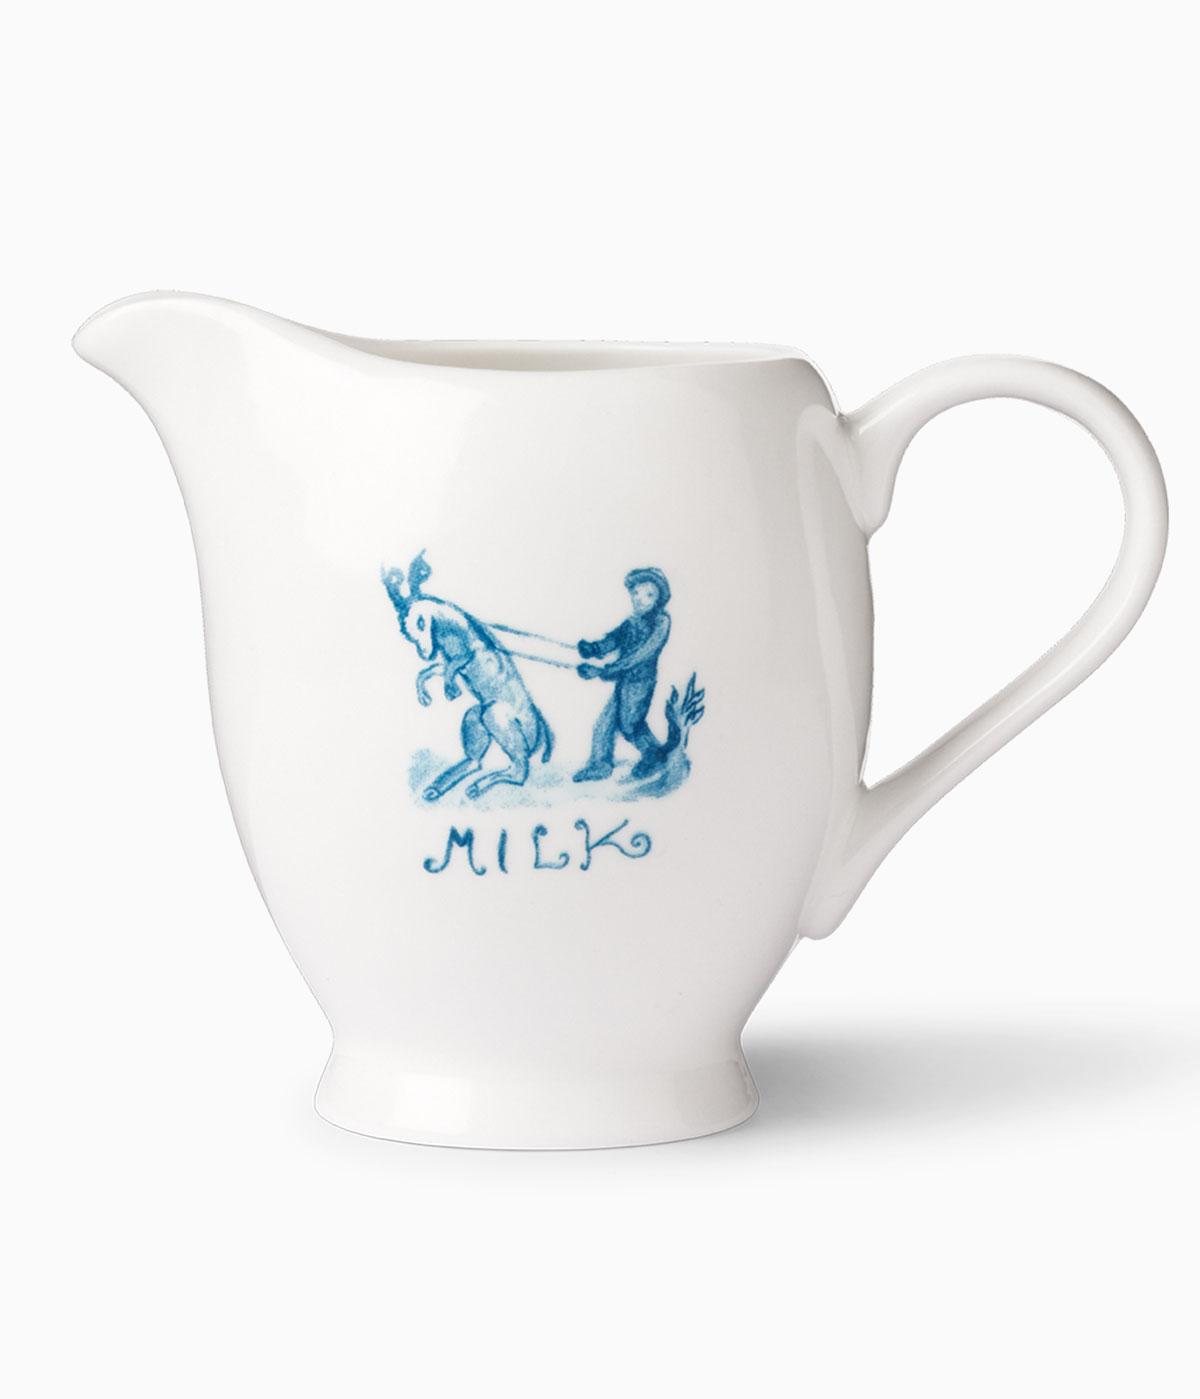 Up Jump the Devel milk jug, designed by songwirter Nick Cave